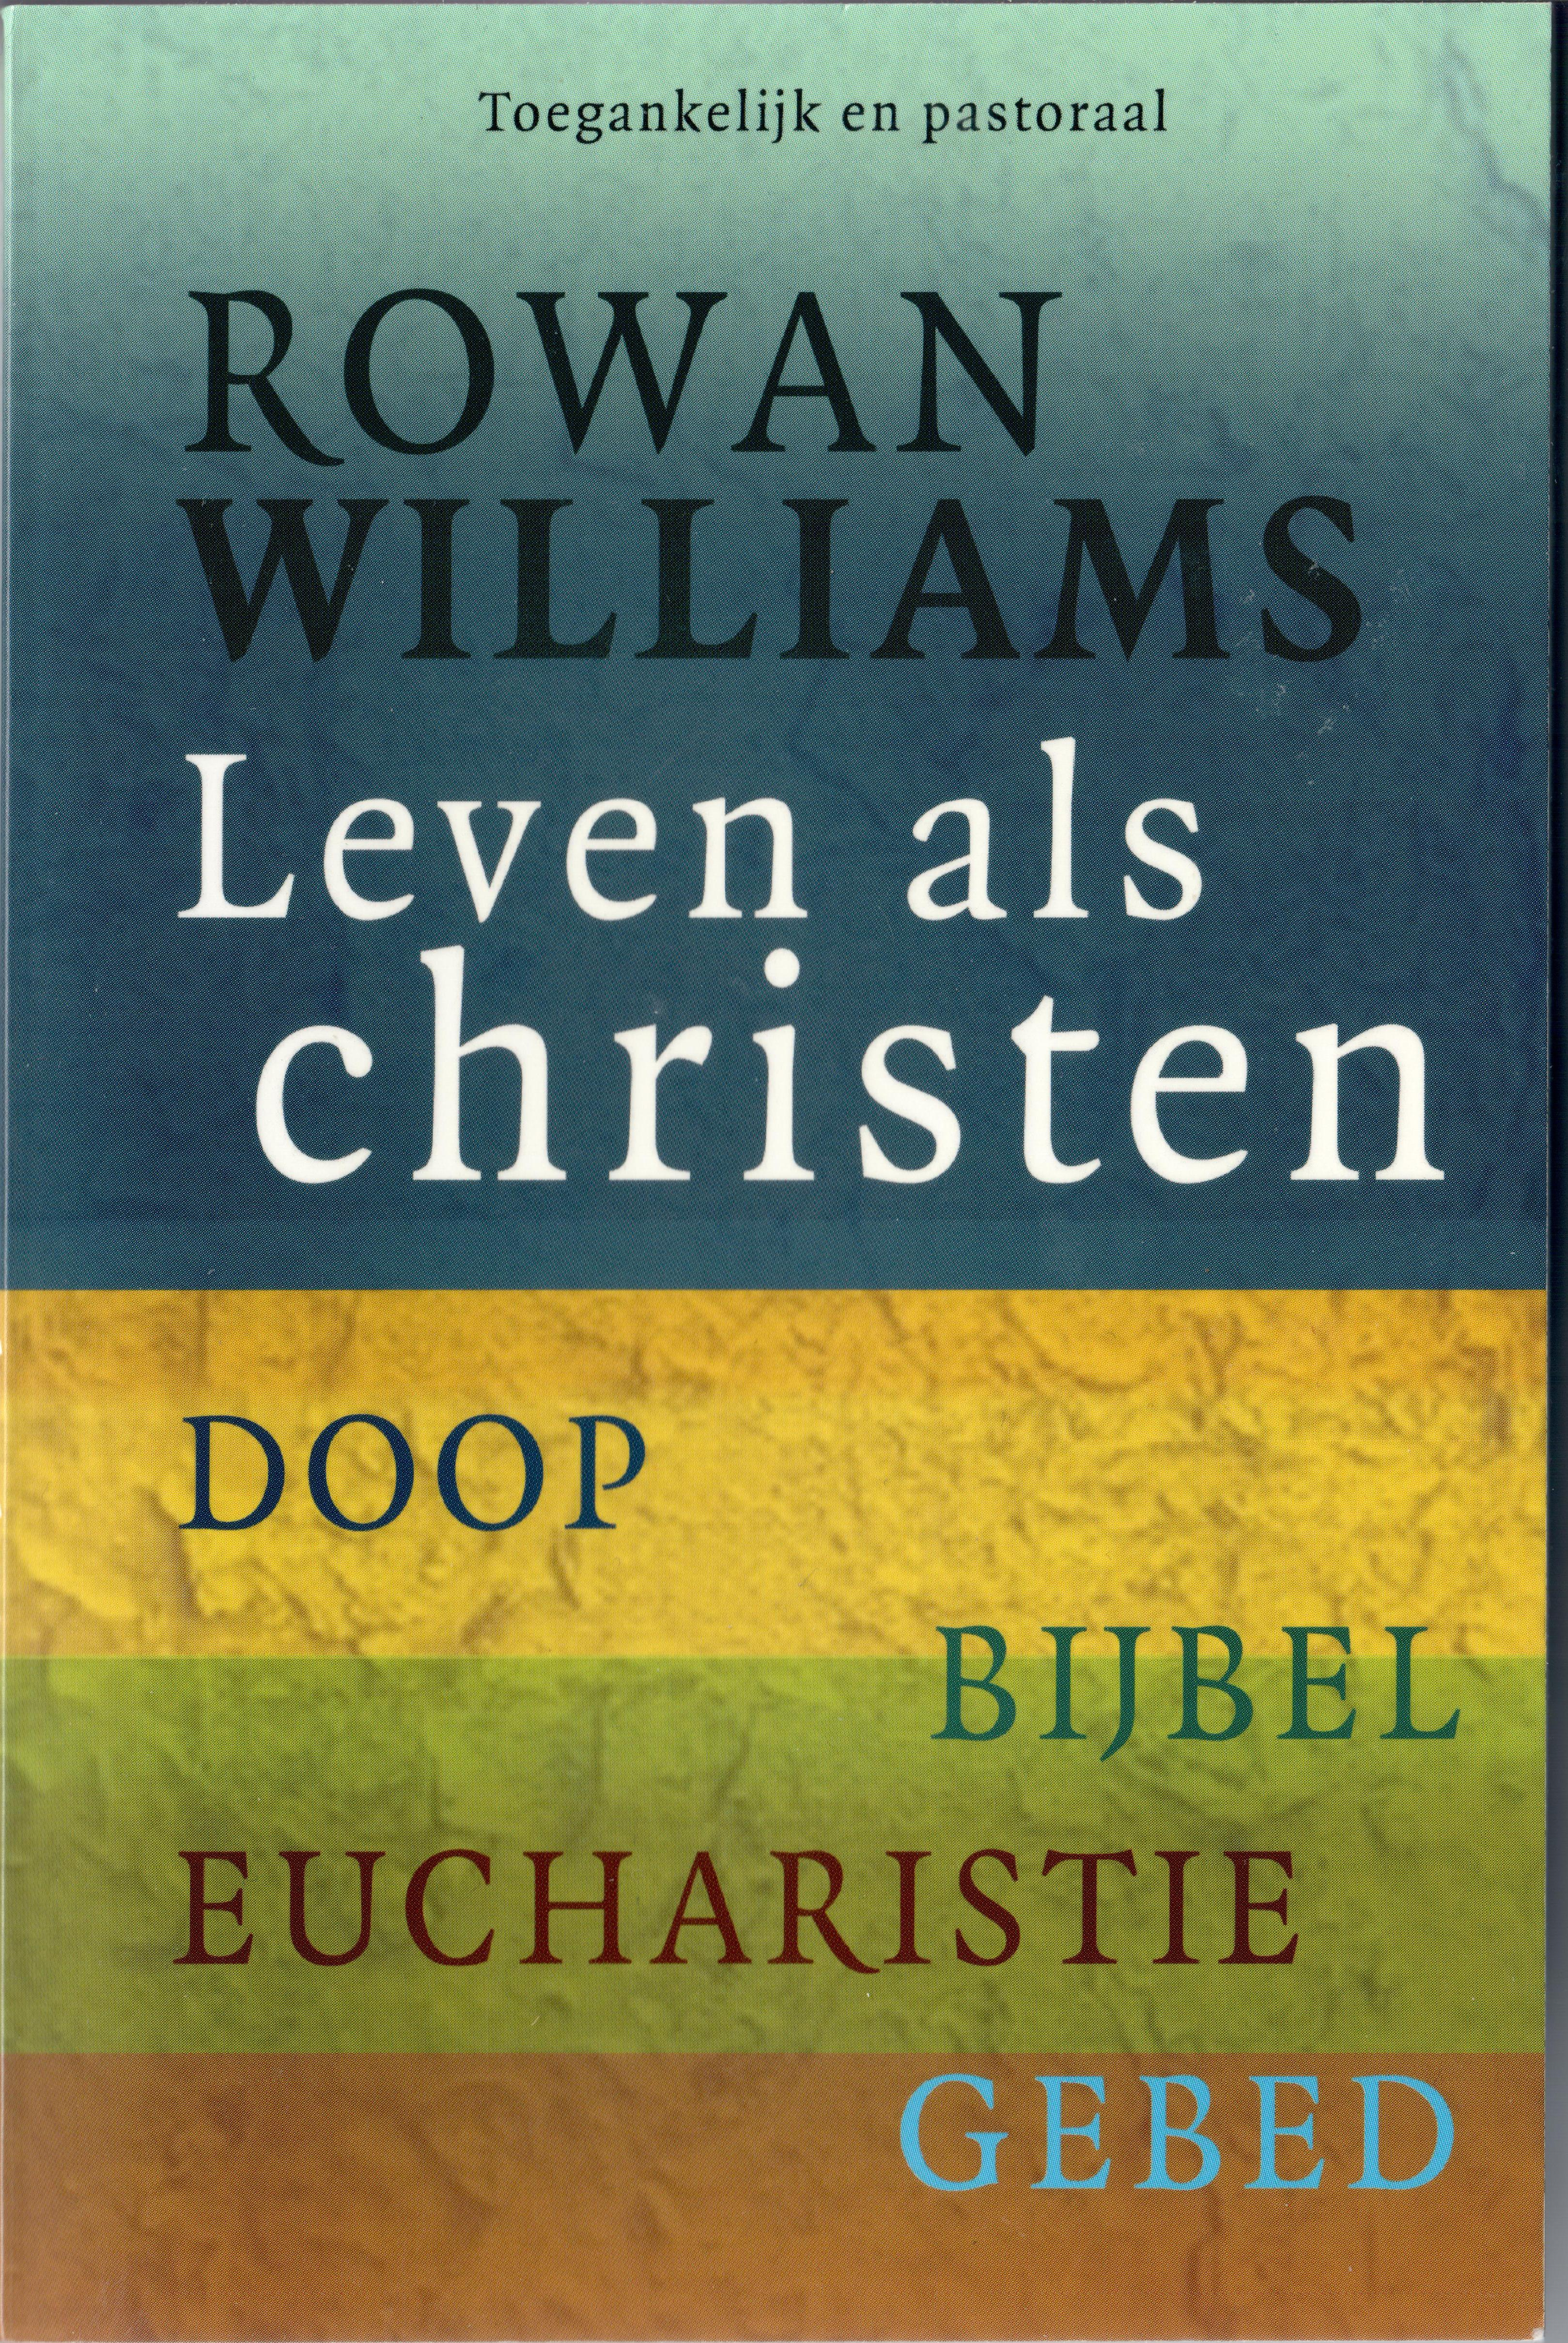 20190225 Rowan Williams leven als christen GROOT